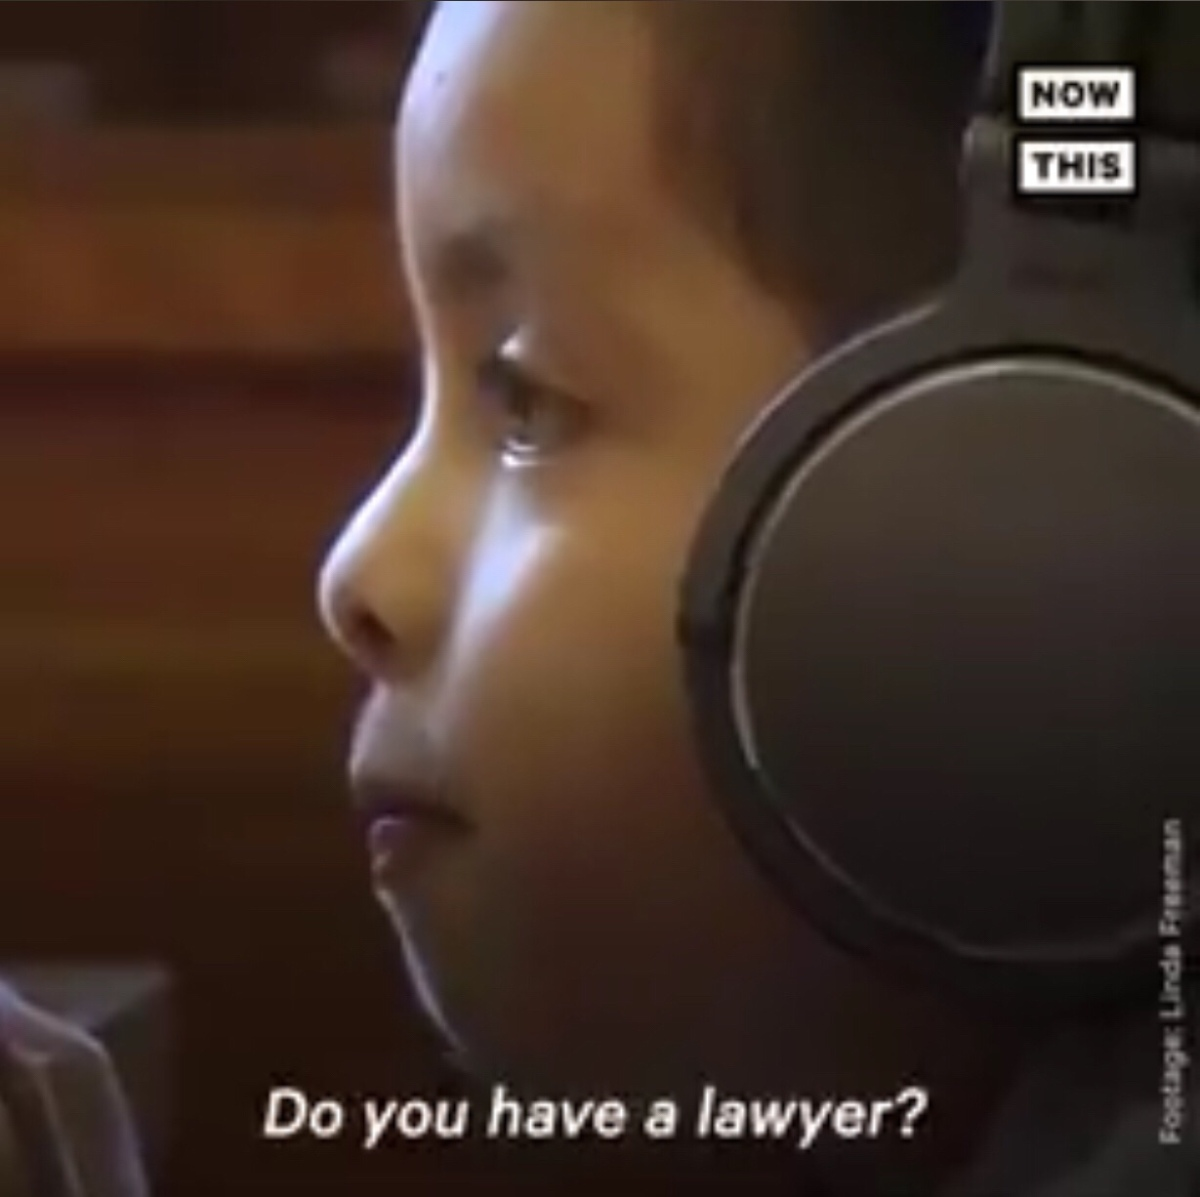 Does Your Child Have a Lawyer?